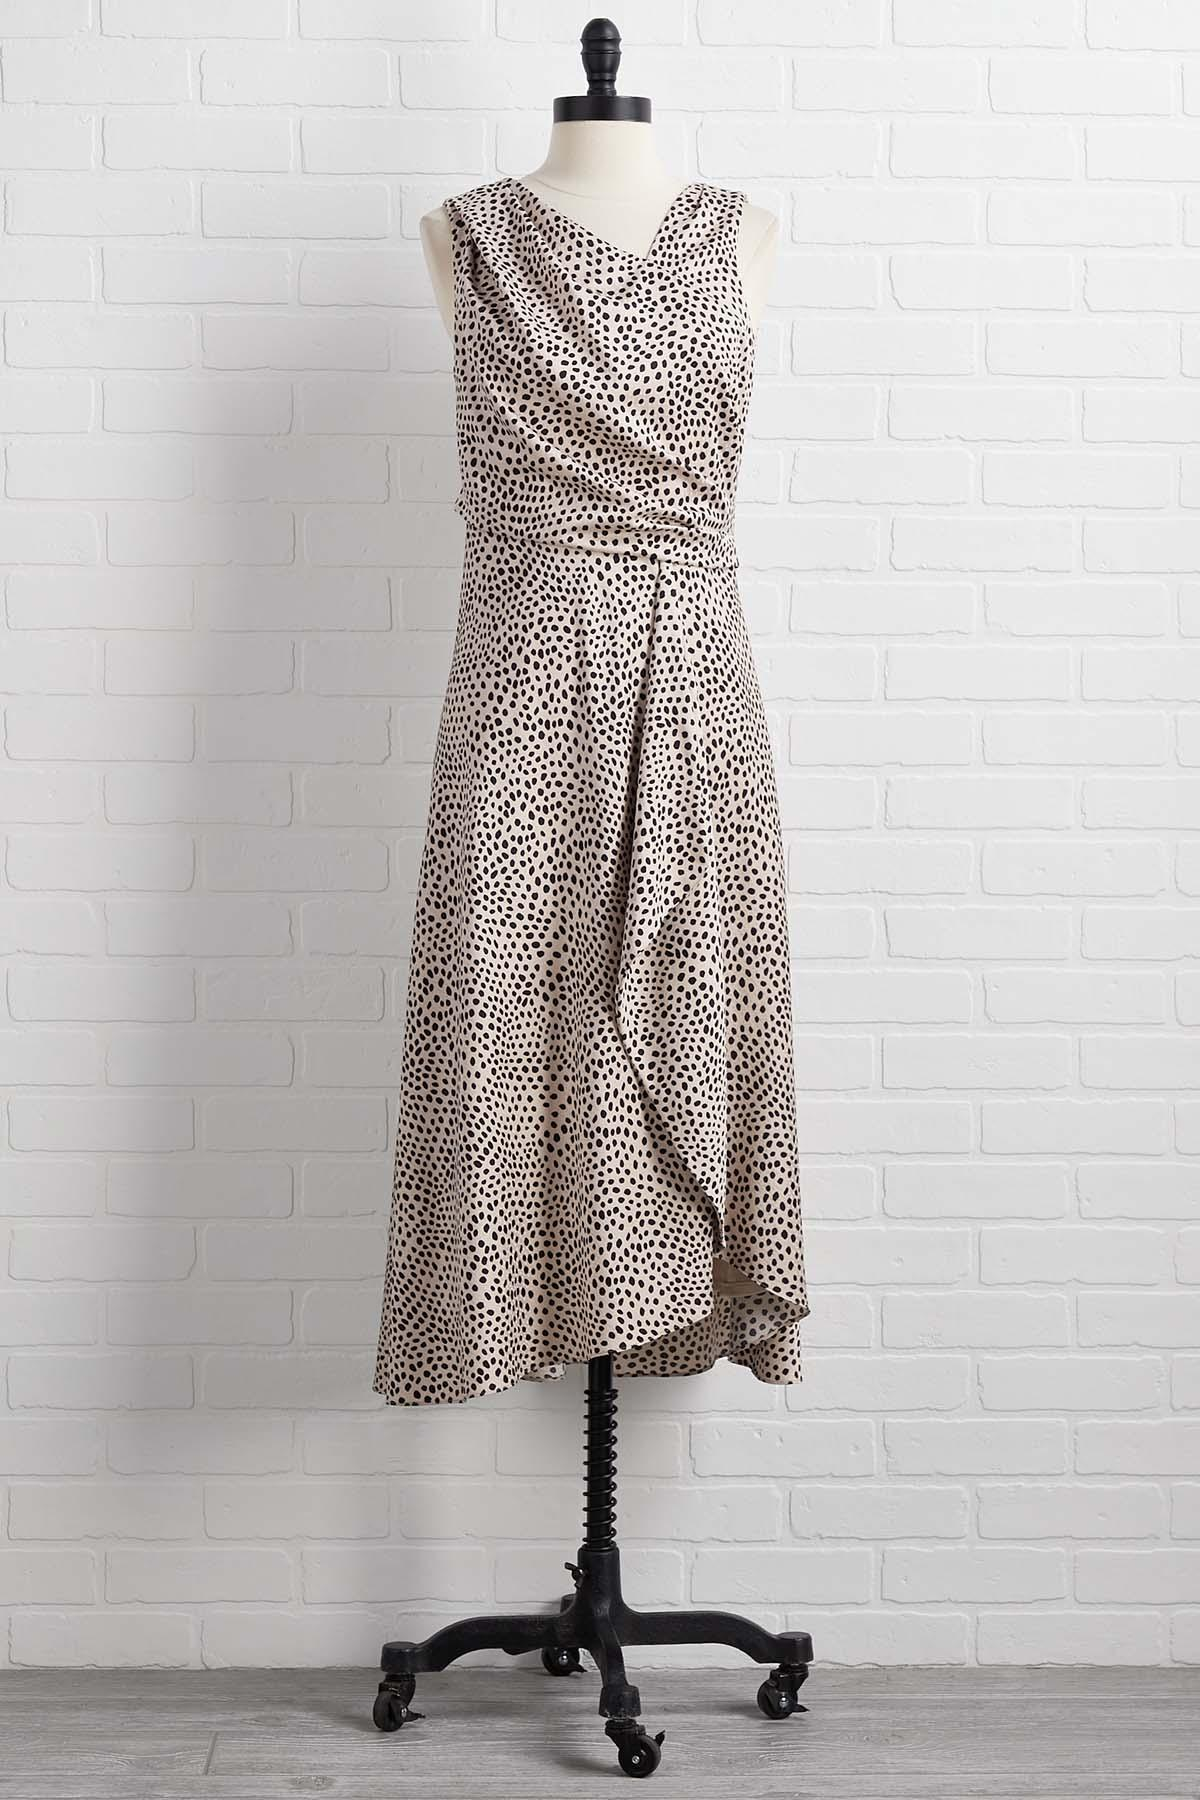 Out West Dress